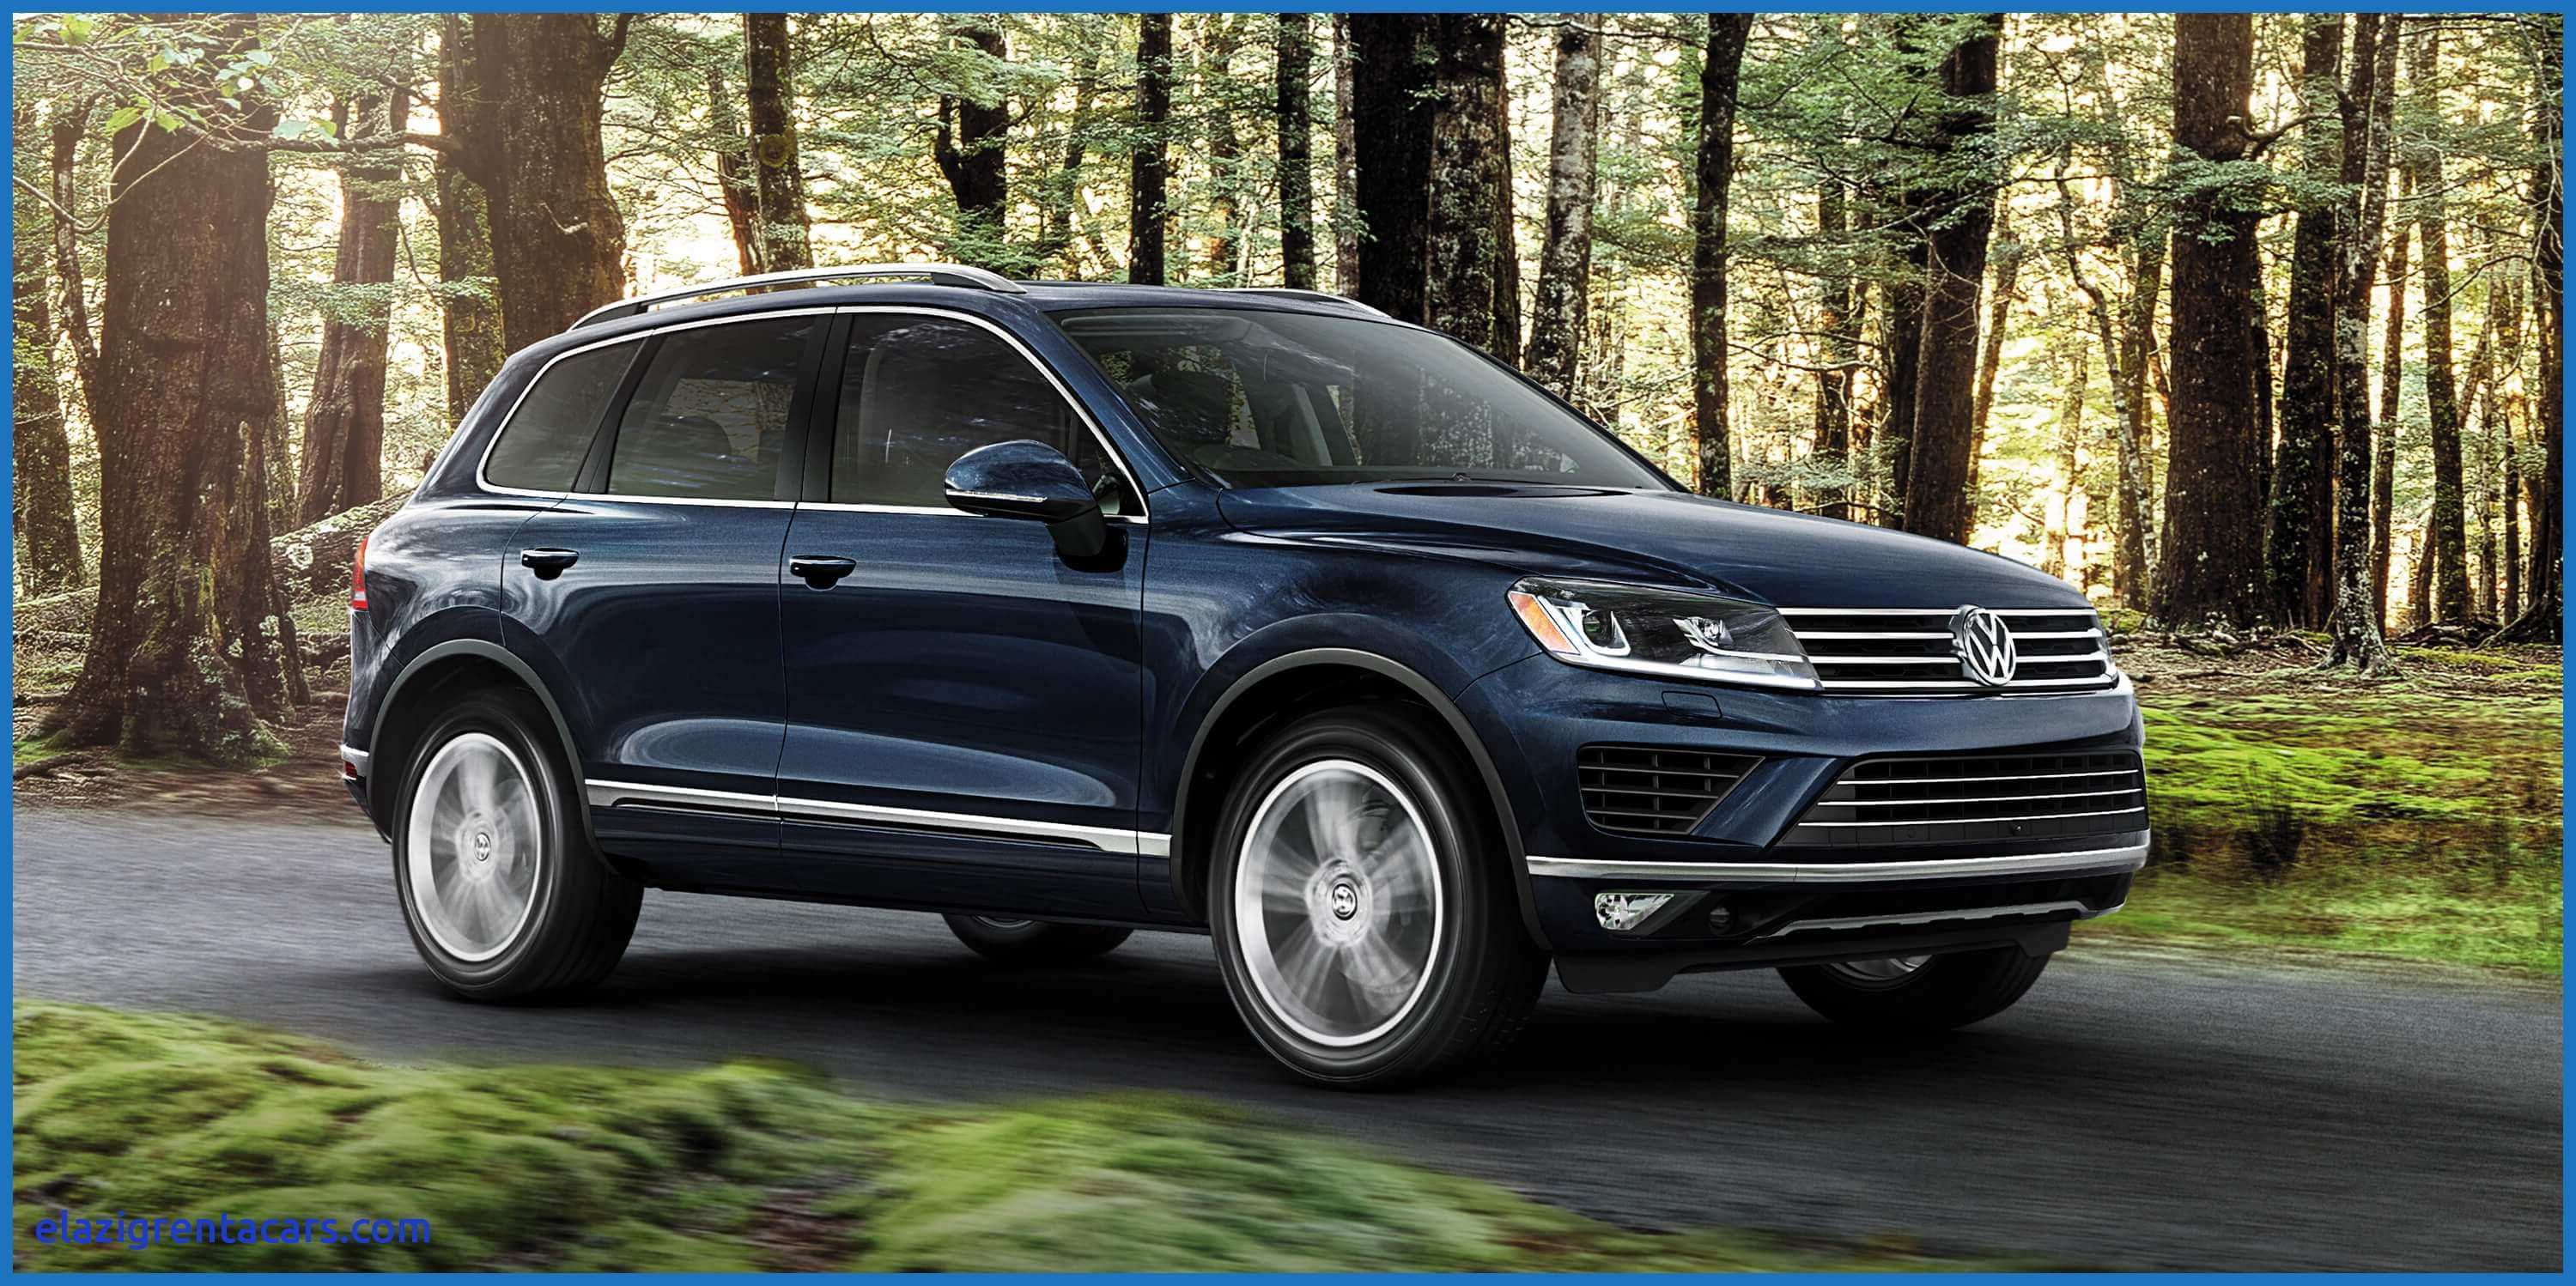 41 All New 2020 Vw Touareg Tdi Specs and Review with 2020 Vw Touareg Tdi